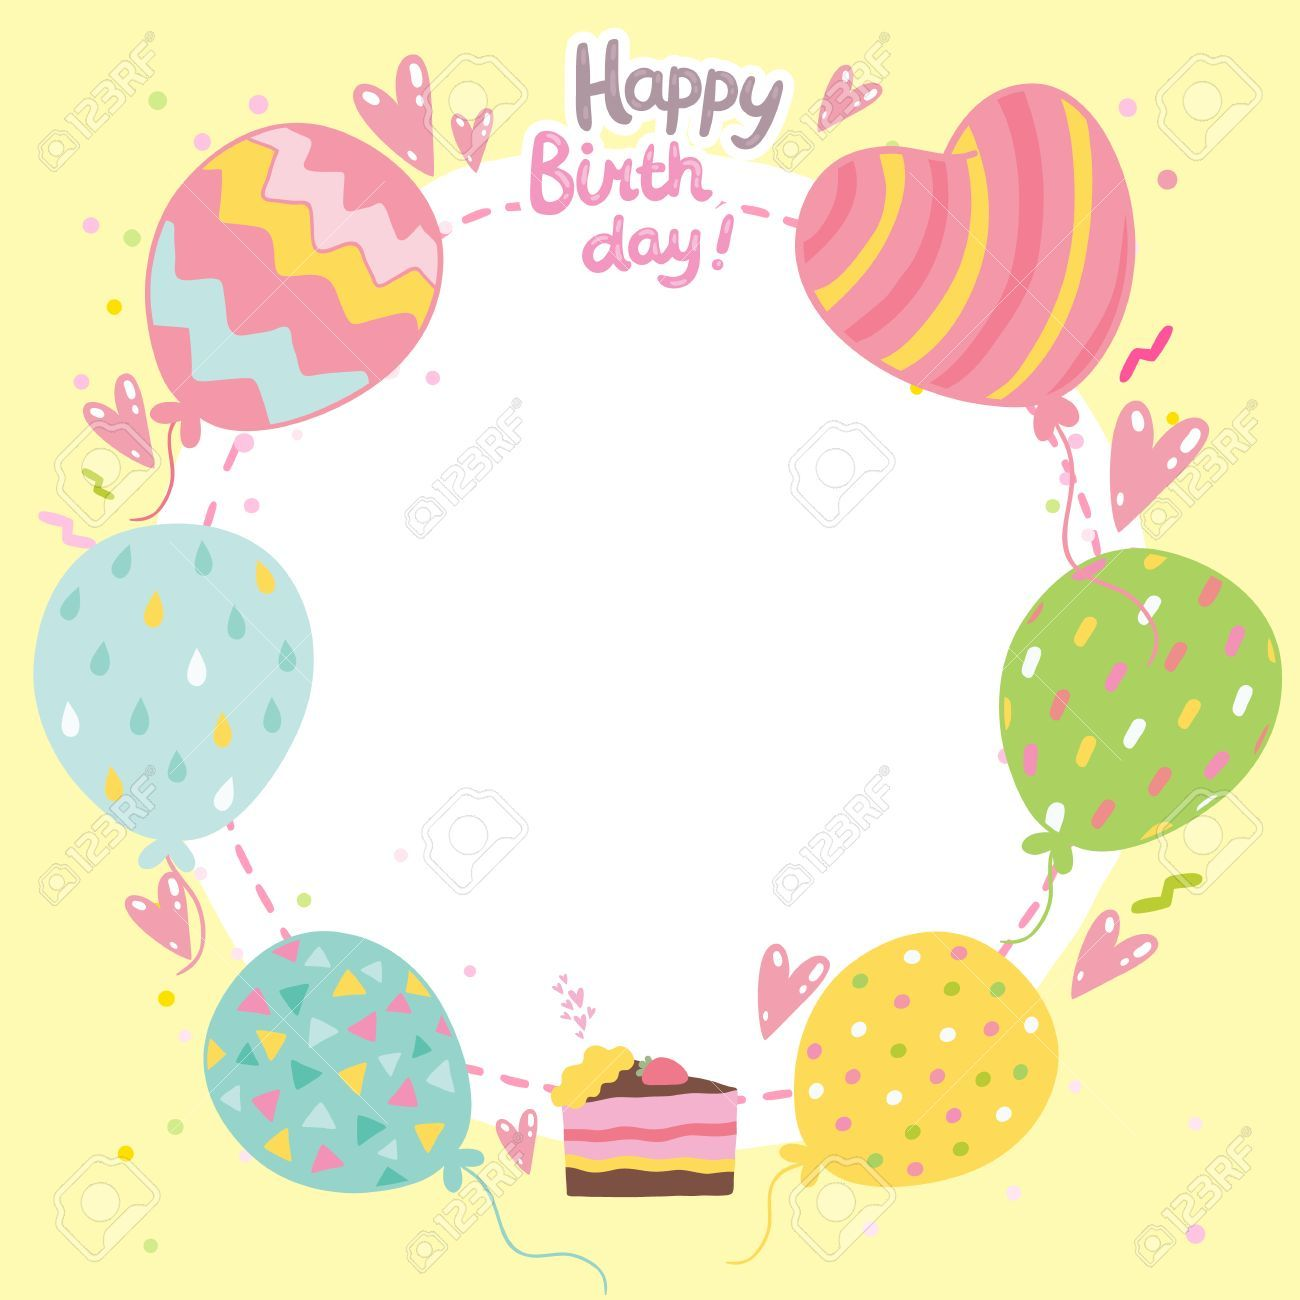 Related Image With Images Free Birthday Card Happy Birthday